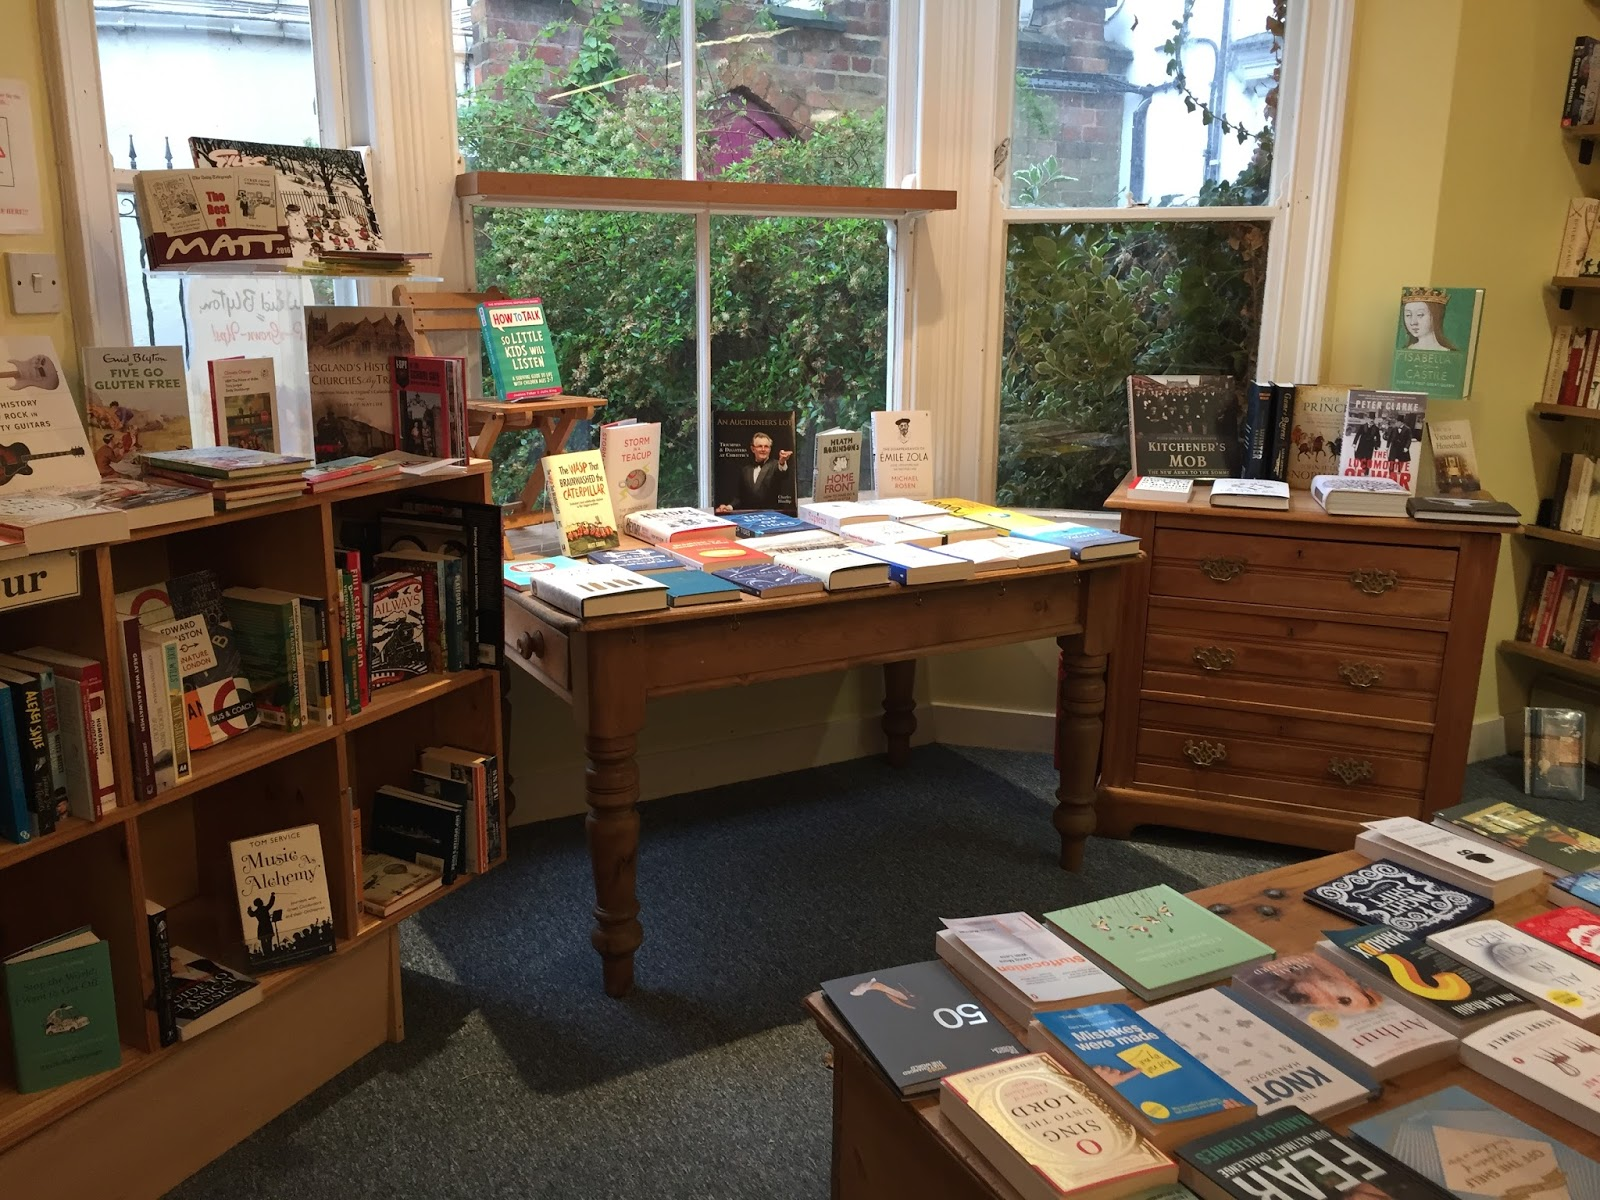 The bookshop around the corner: In search of a good bookshop